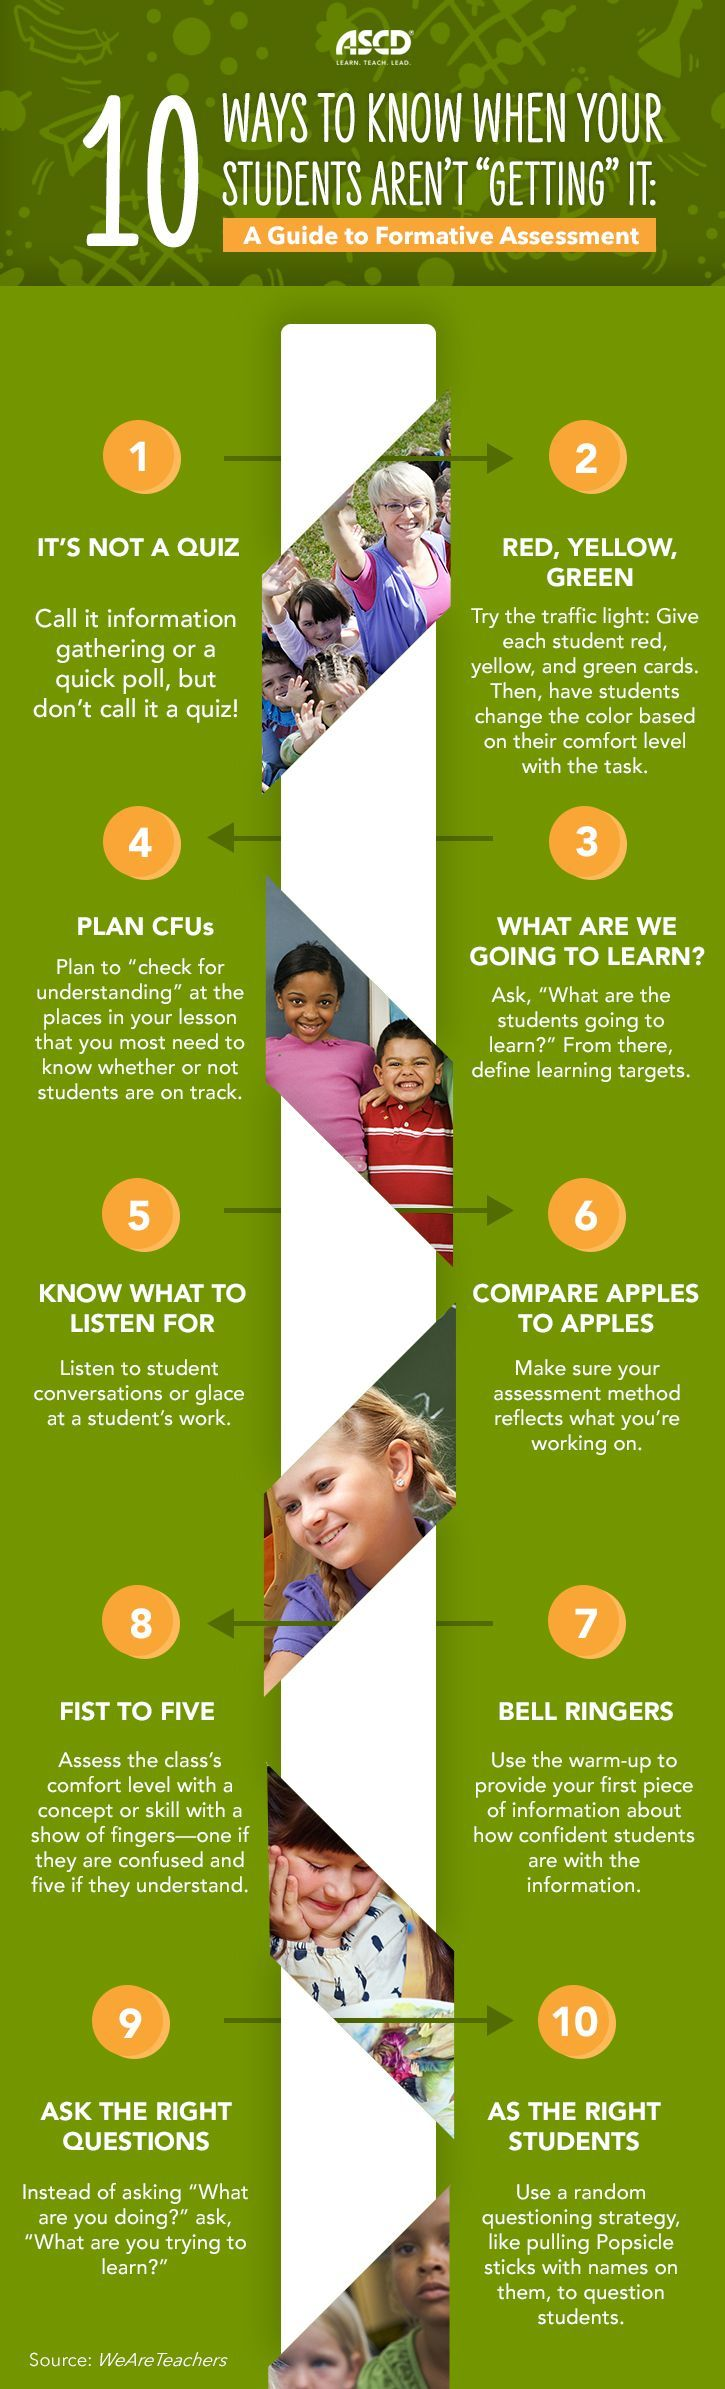 A Guide to Formative Assessment Infographic